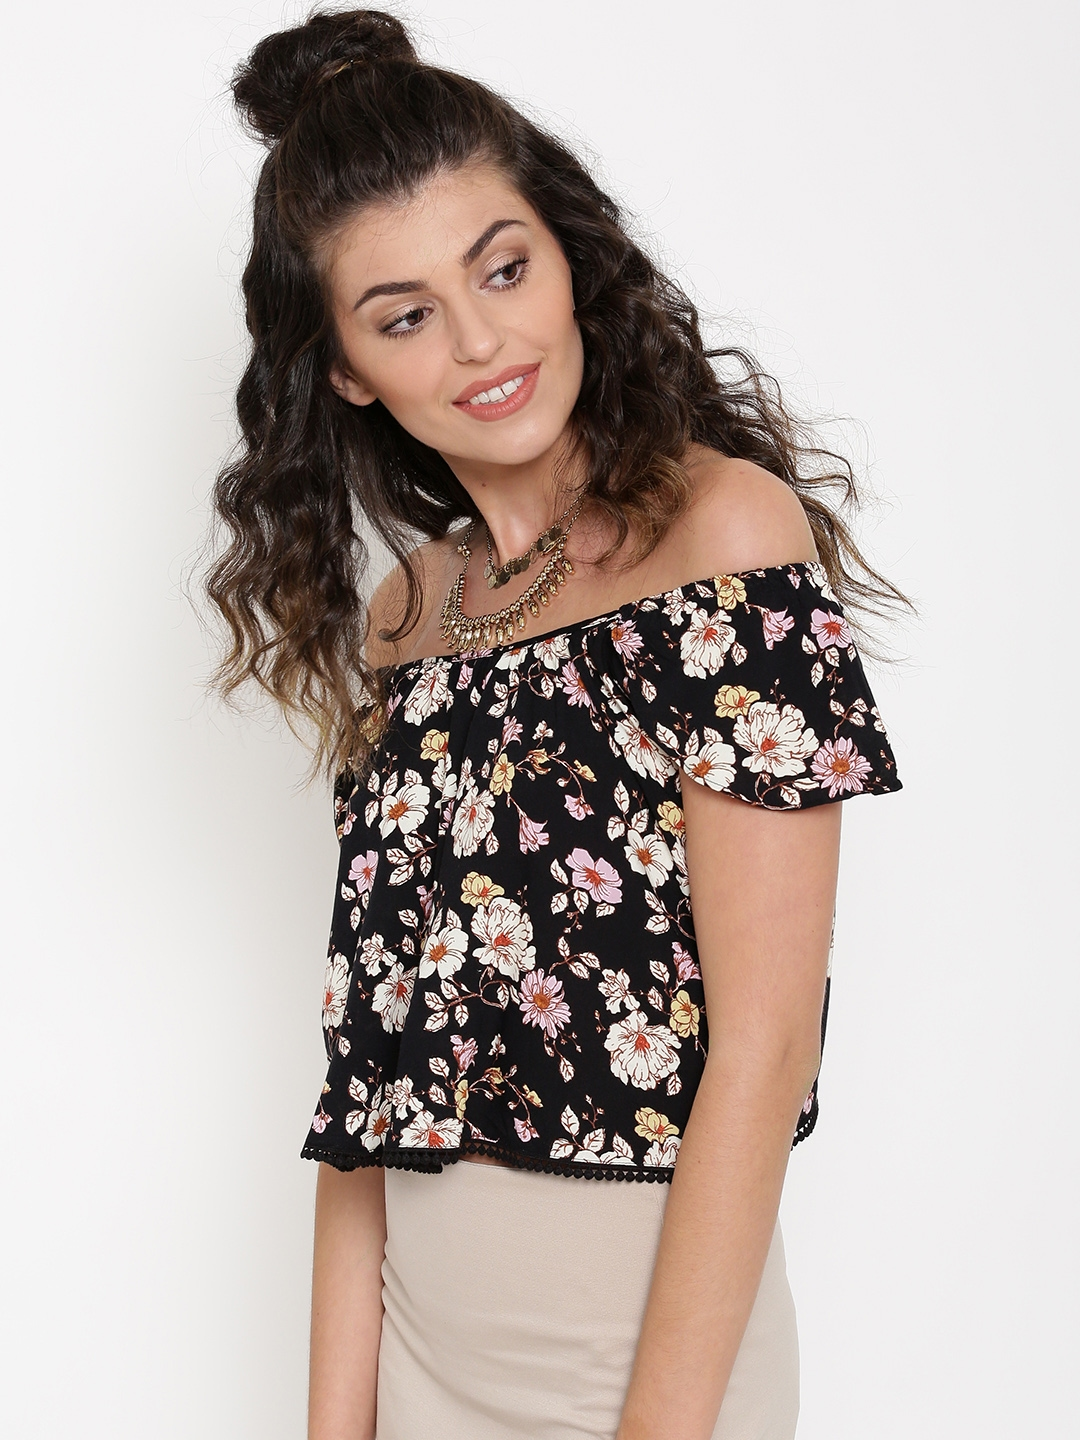 4166457b15ccc6 Buy FOREVER 21 Women Black Floral Print Off Shoulder Crop Top - Tops ...